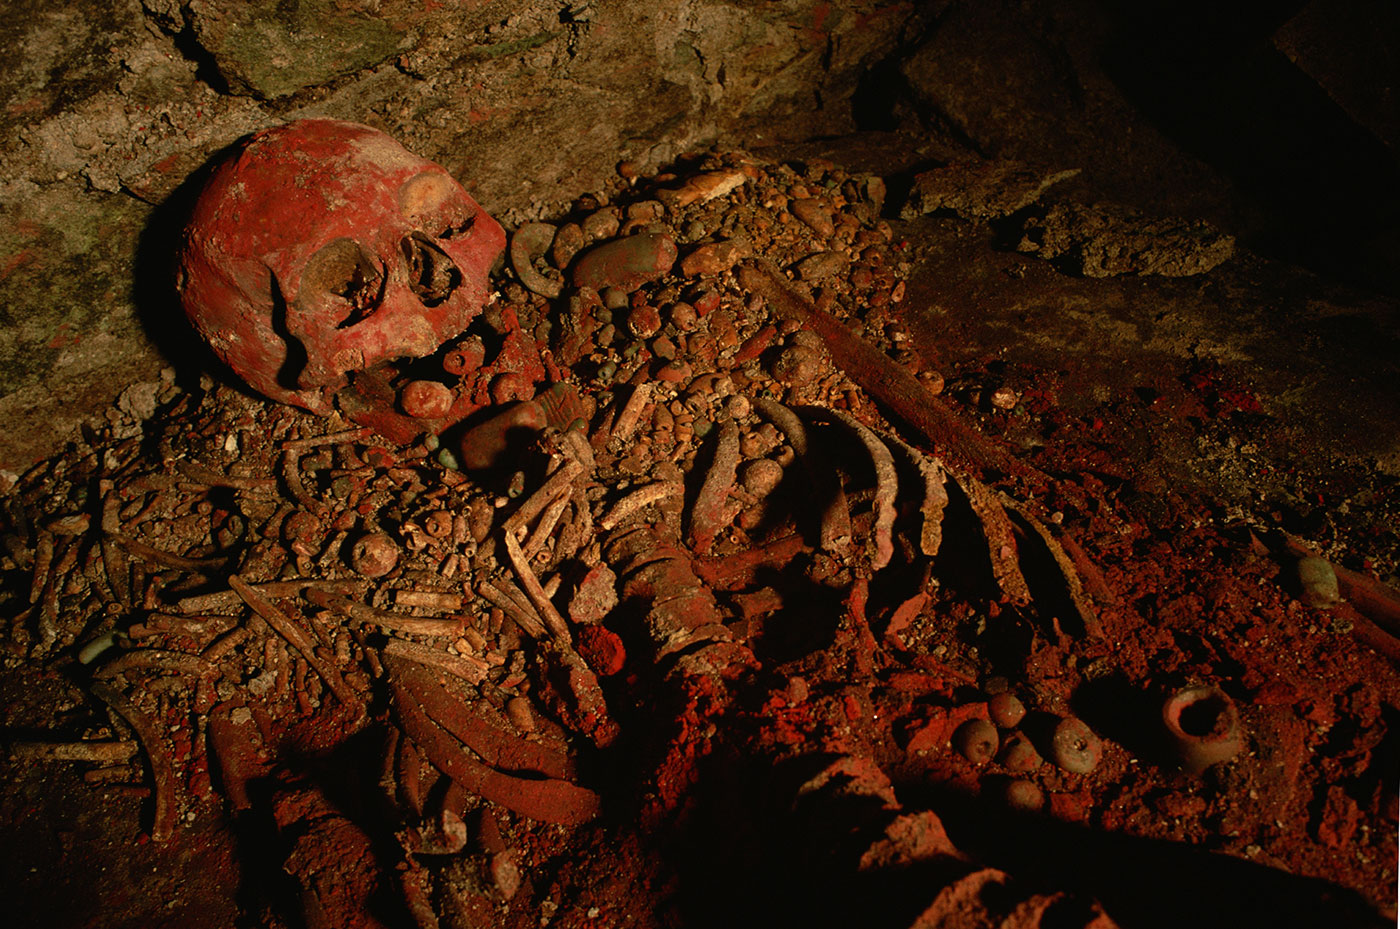 Mercury, a toxic heavy metal used to extract silver and gold from ore in a process called amalgamation, comes from the mineral cinnabar, which is crushed to make vermilion pigment. The remains pictured above are covered in cinnabar, which may have been used for ceremonial or decorative purposes.